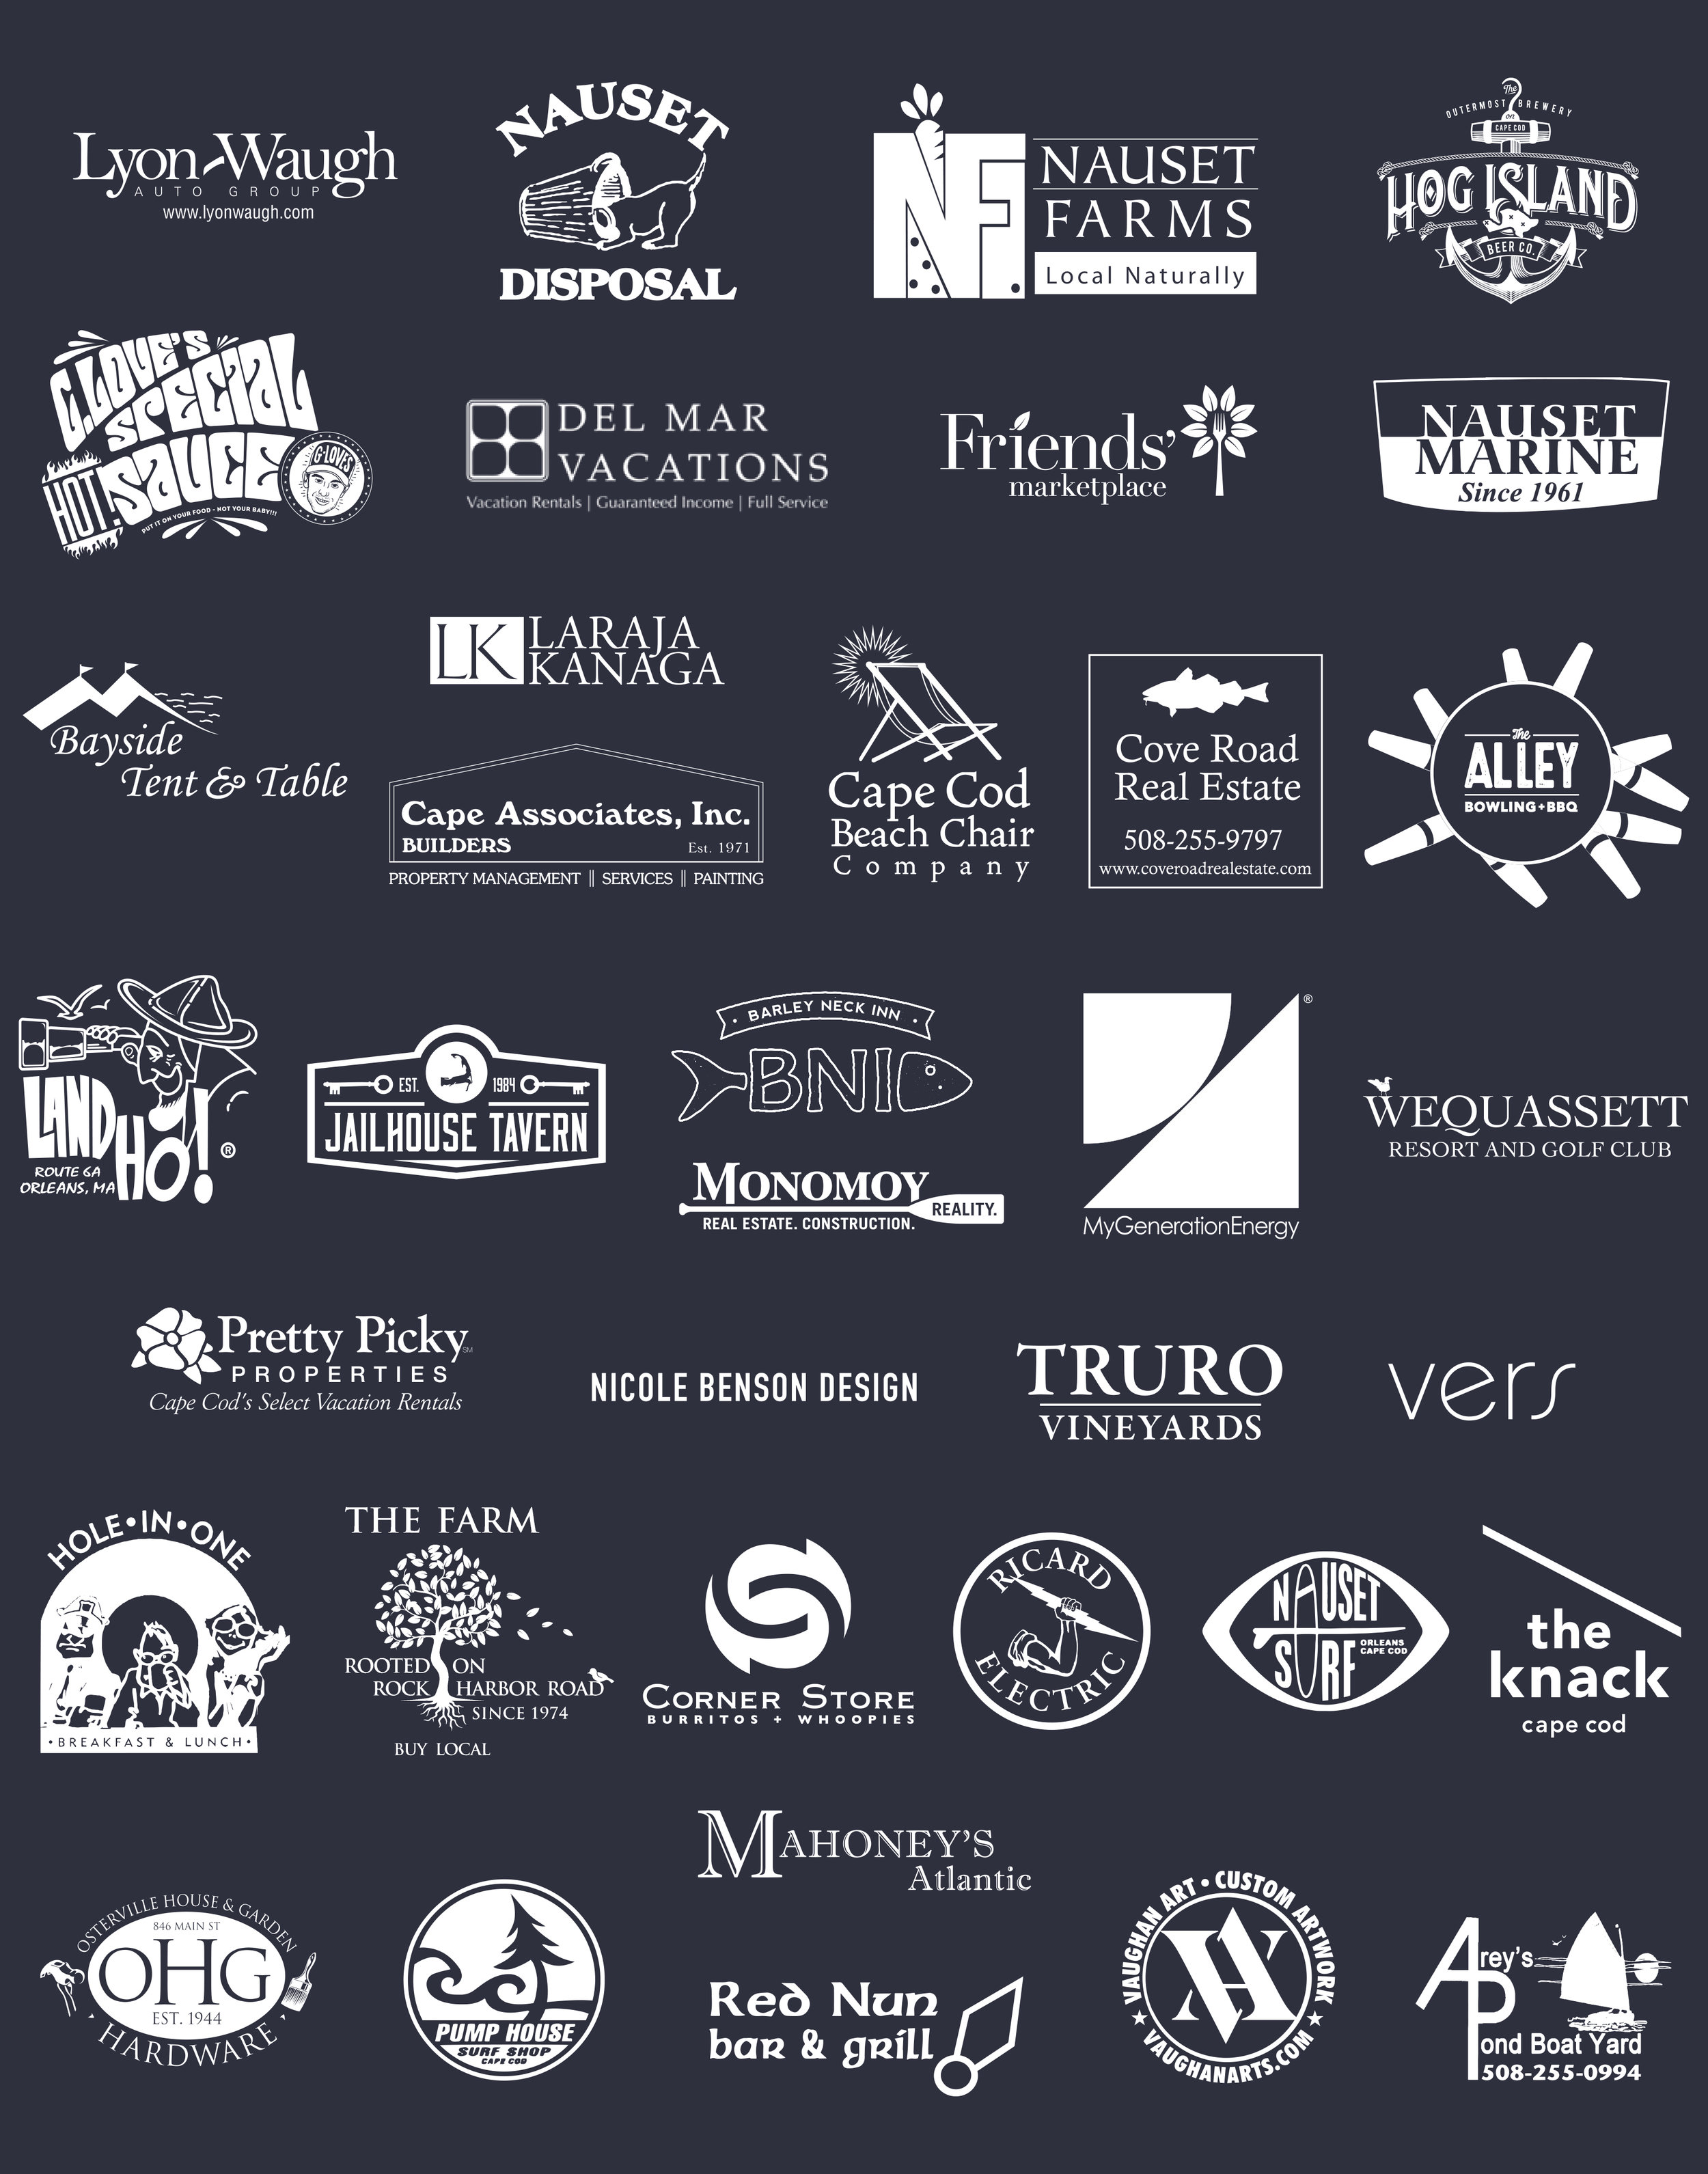 Thanks to all of our sponsors who help make it all possible!